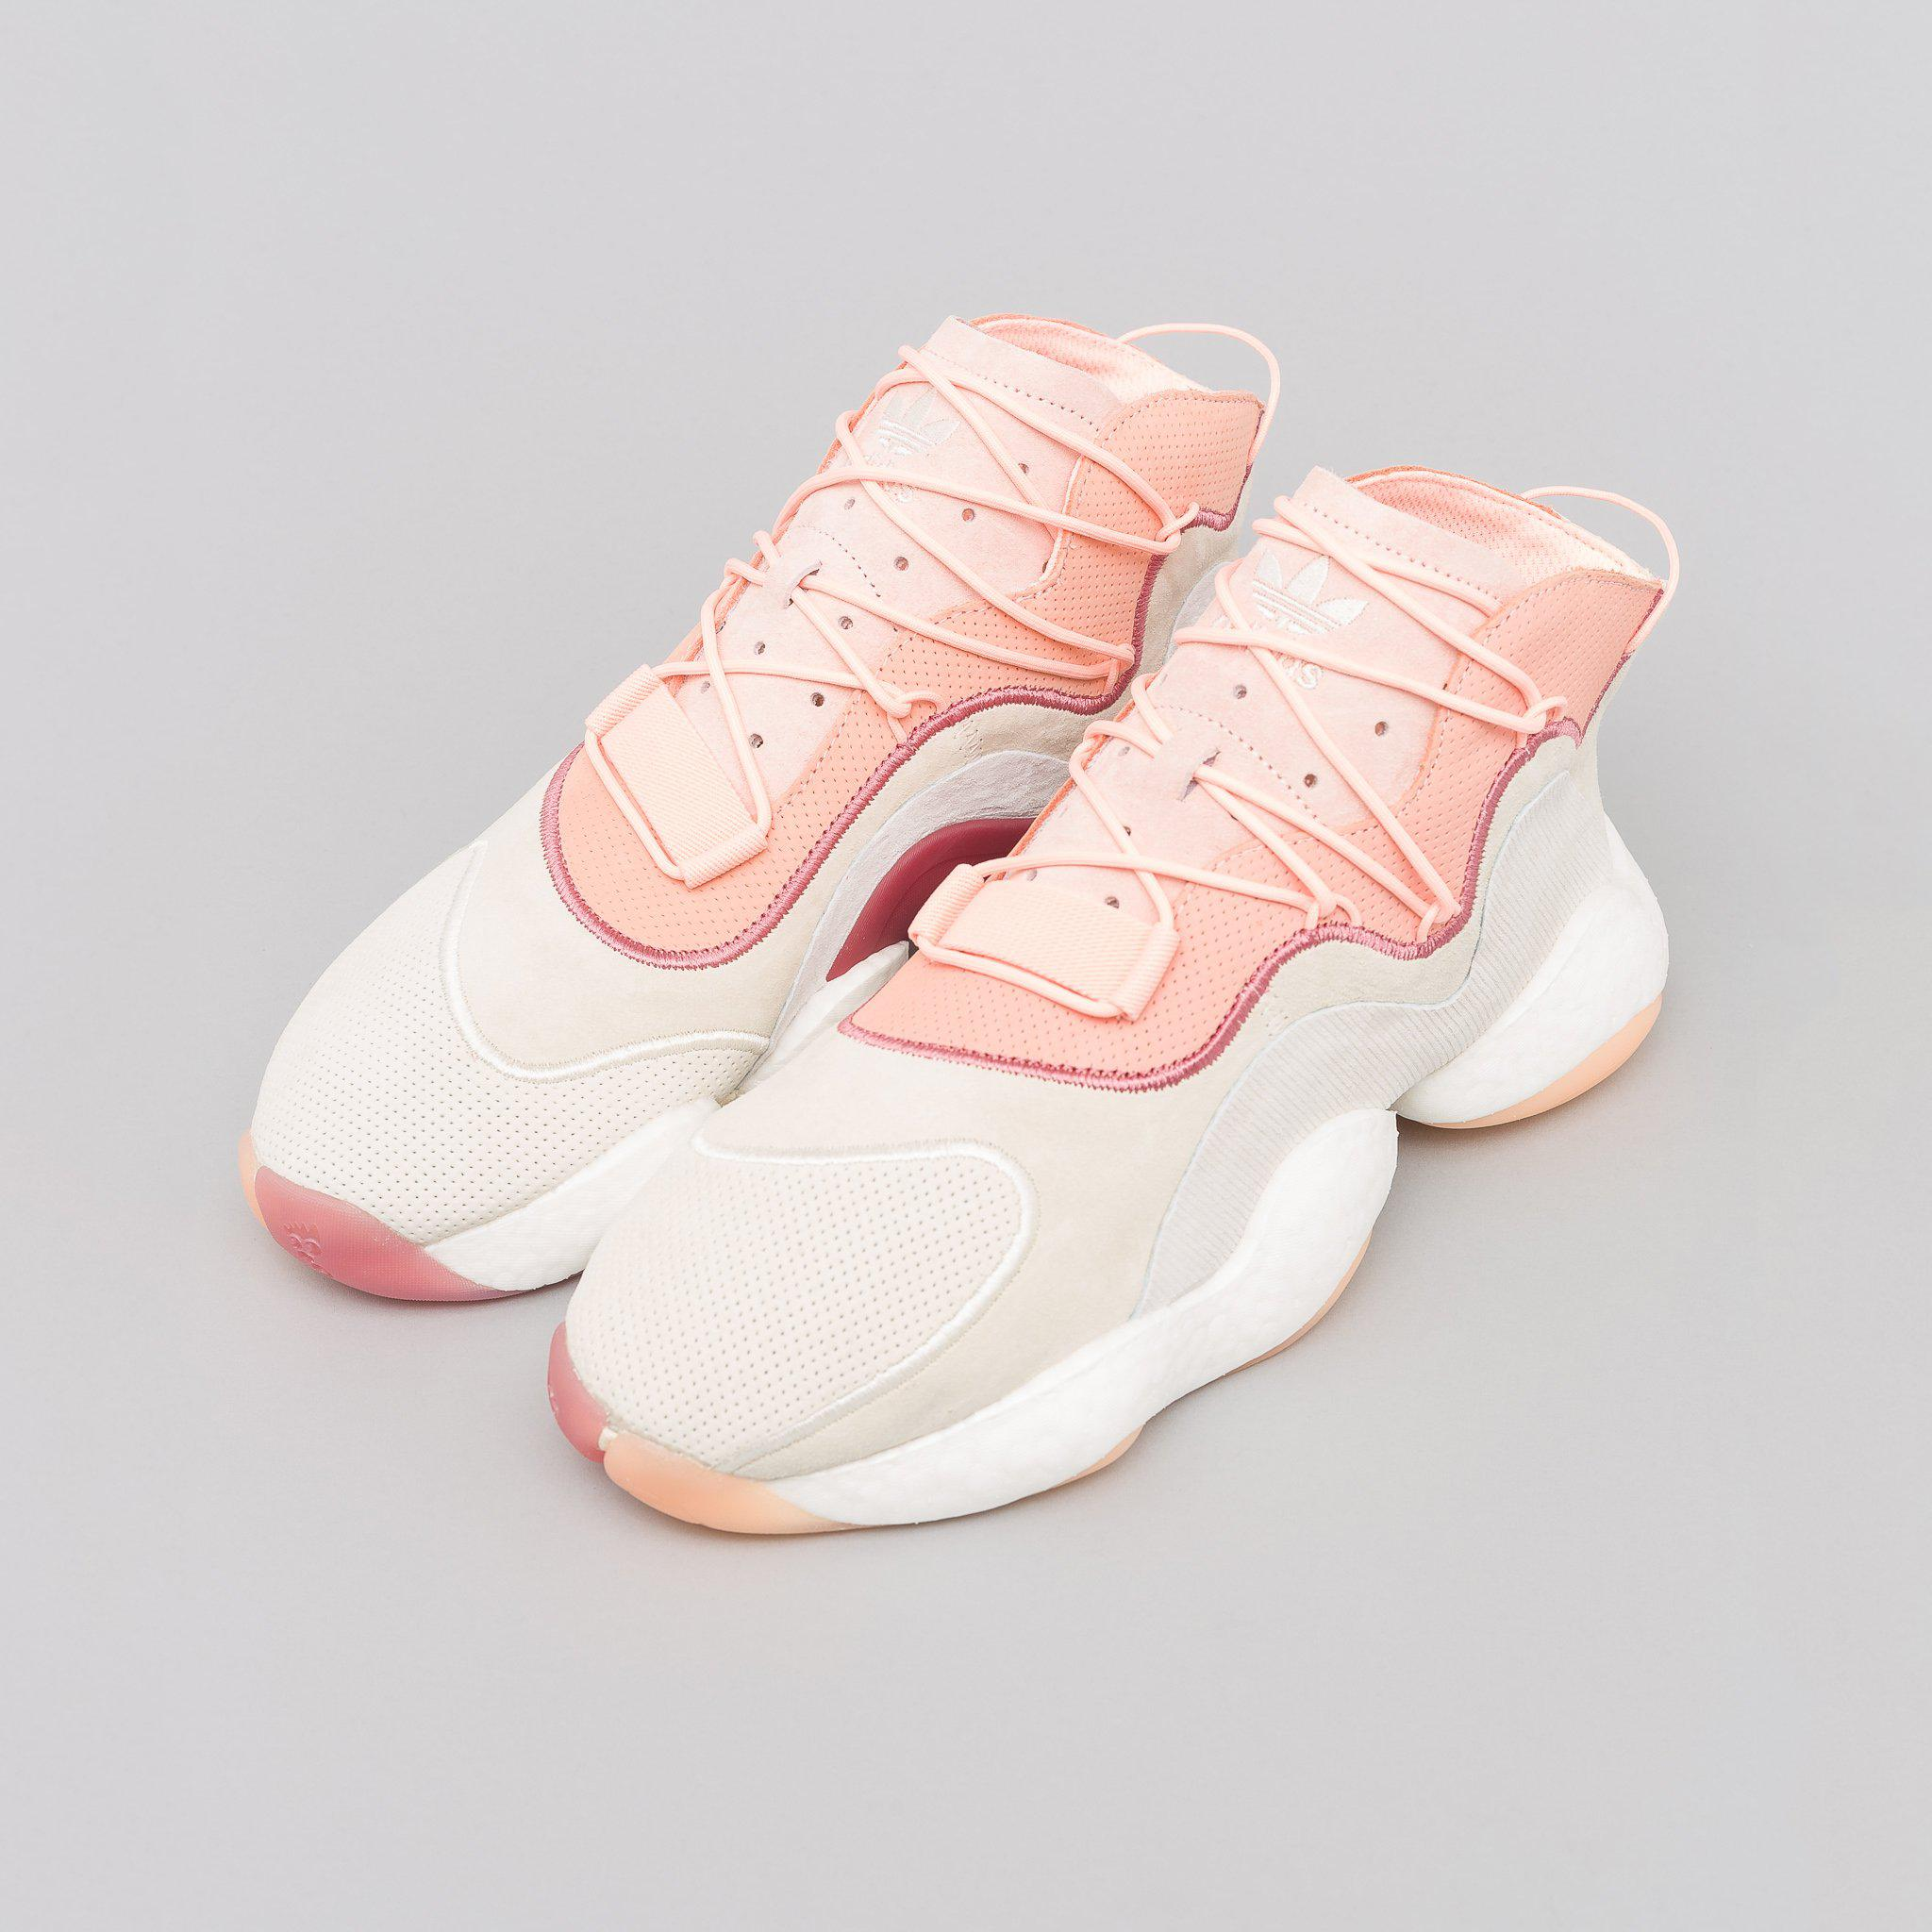 the latest 5d221 19805 Lyst - adidas Crazy Byw In Cream Whiteorange for Men